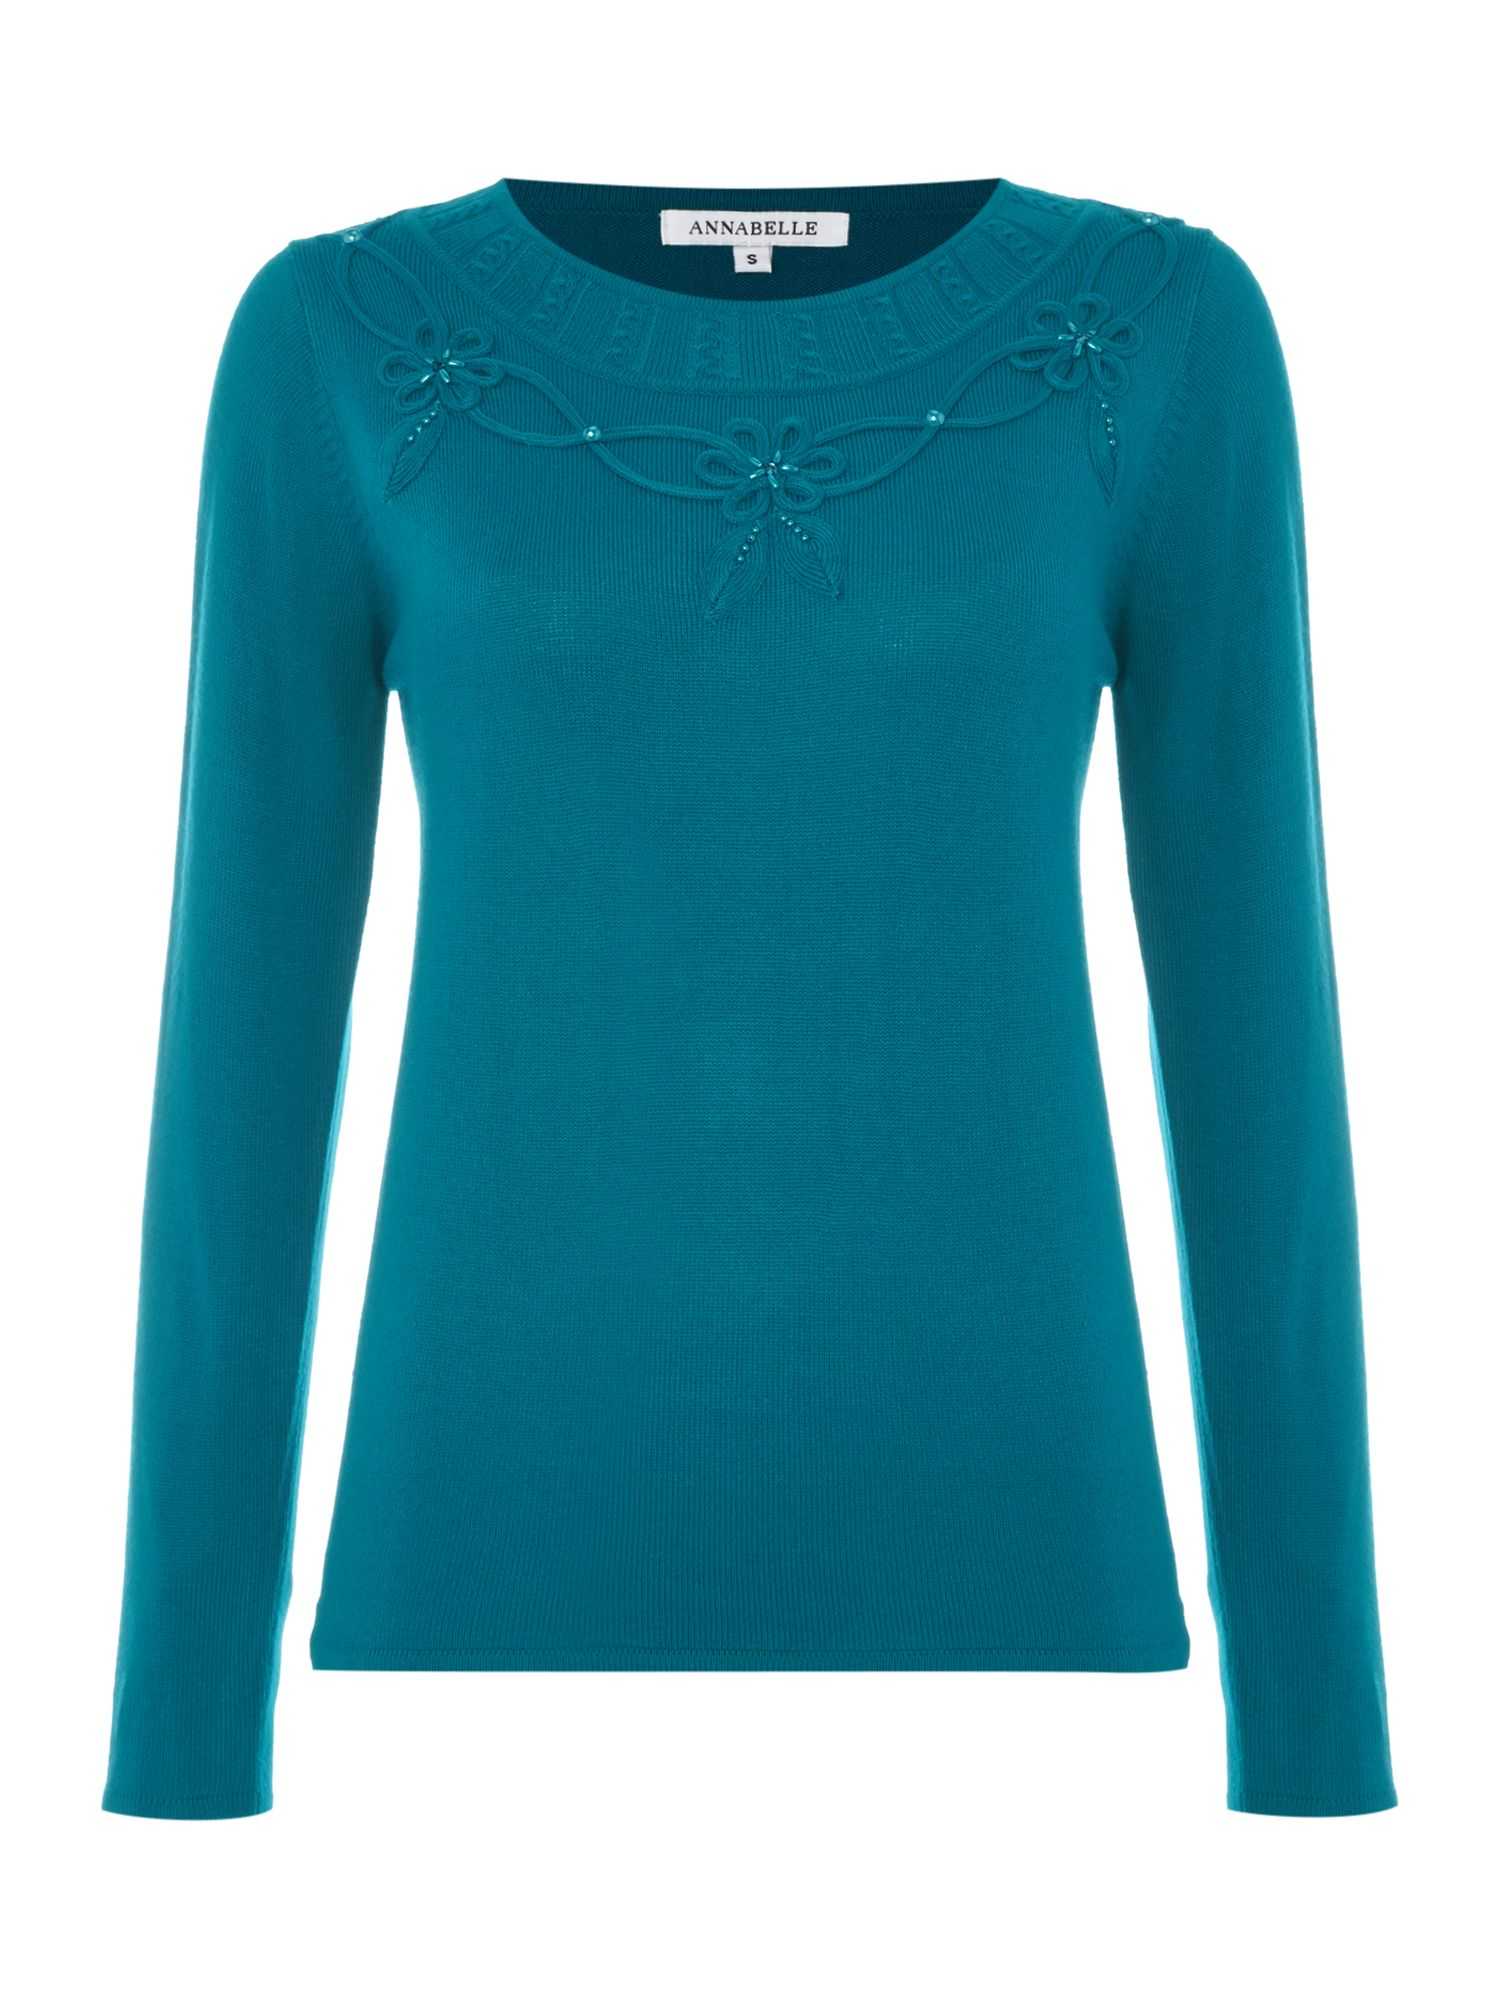 Annabelle Annabelle Embellished Knitted Jumper, Green